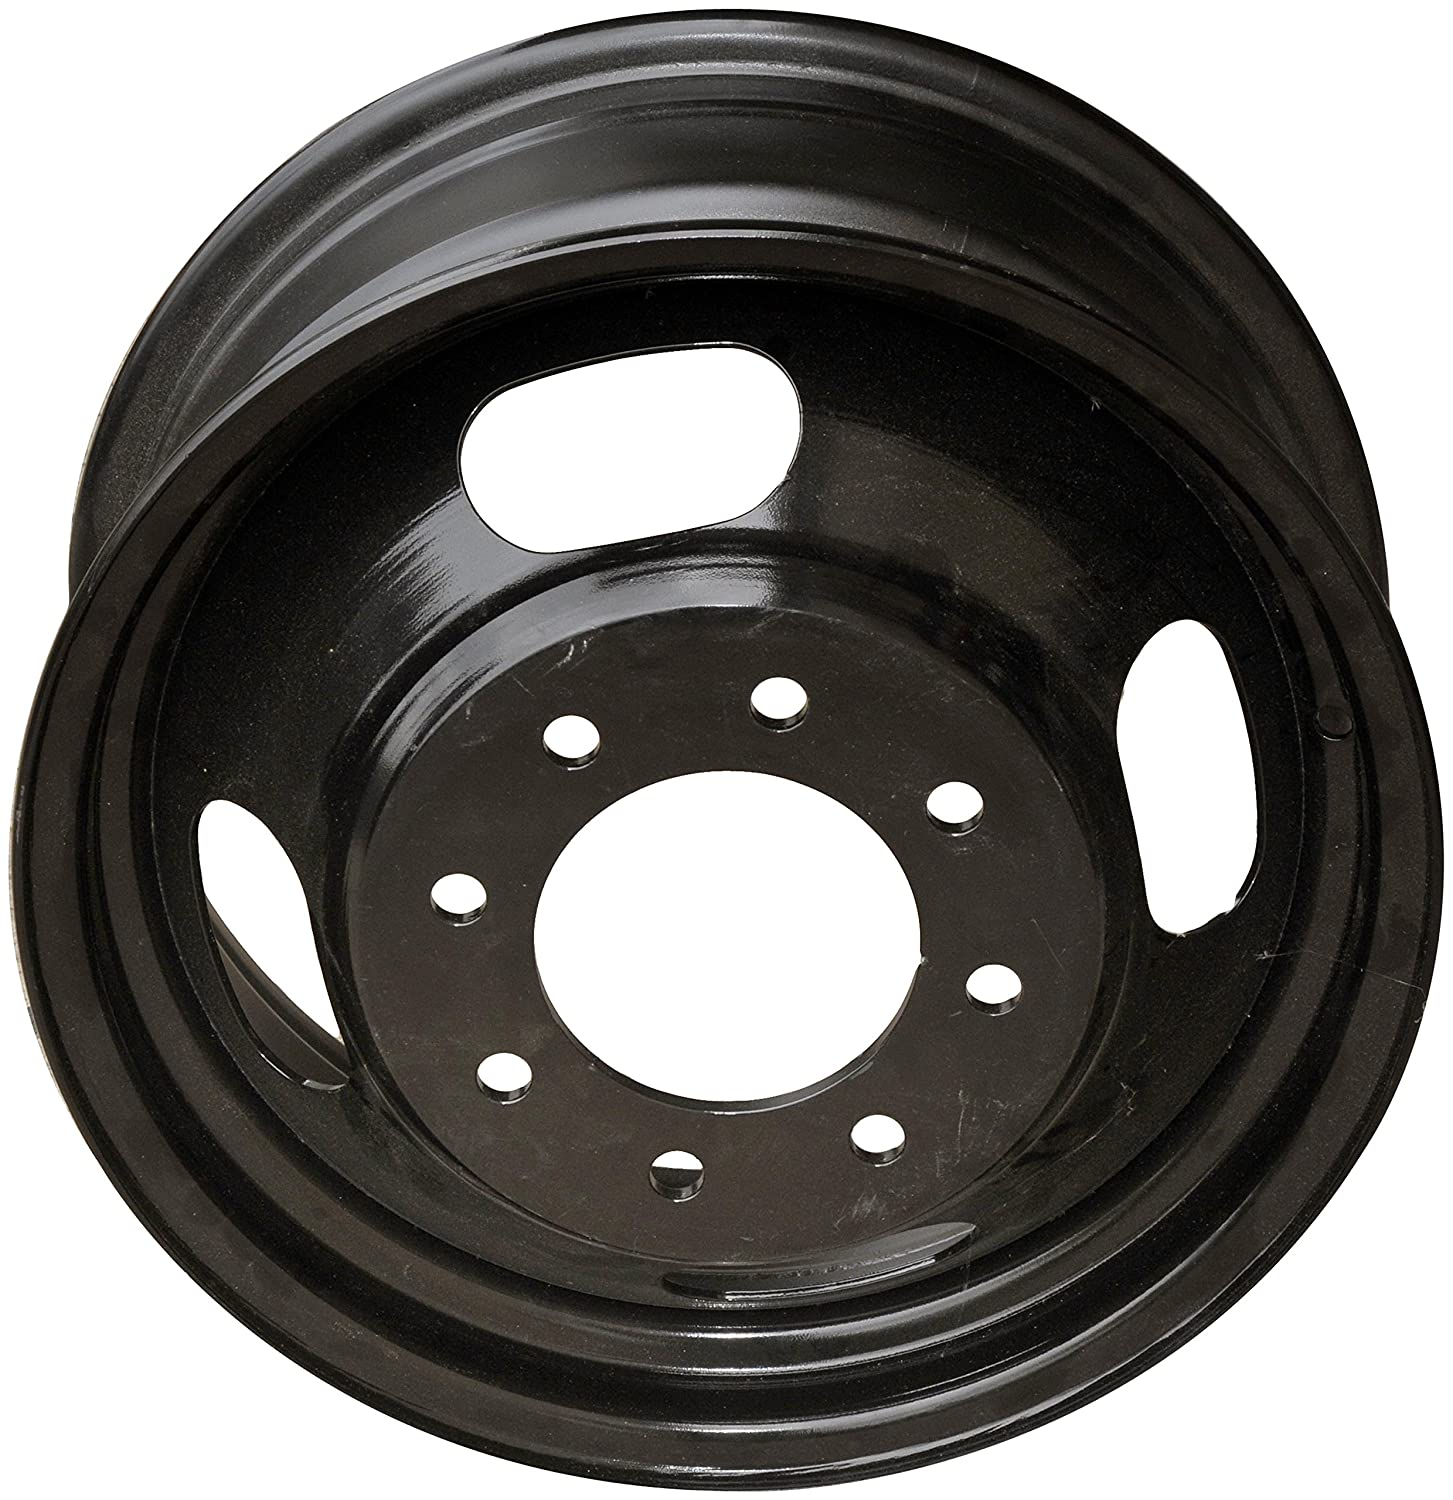 16 x 6. inches //5 x 108 mm, 51 mm Offset Dorman 939-199 Black Wheel with Painted Finish